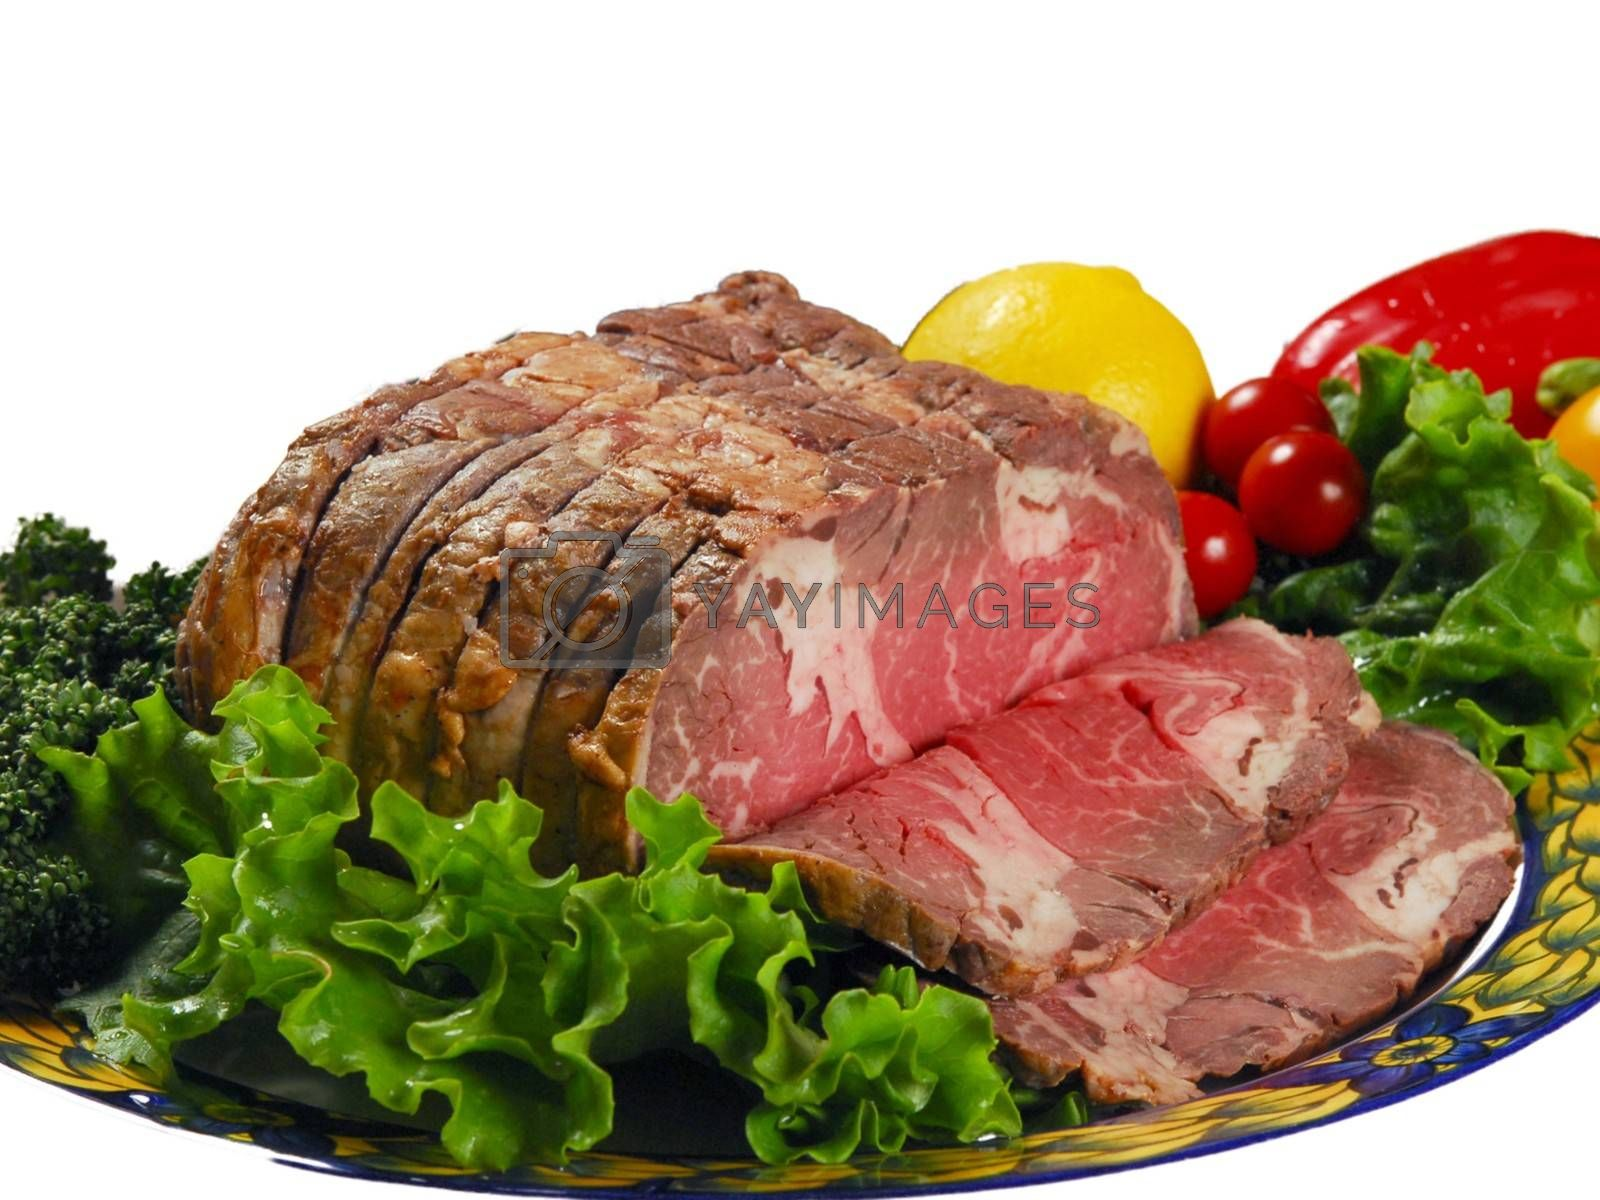 Royalty free image of Knuckle ham with fresh salad, broccoli, lemon,California peppers on a plate by balage941